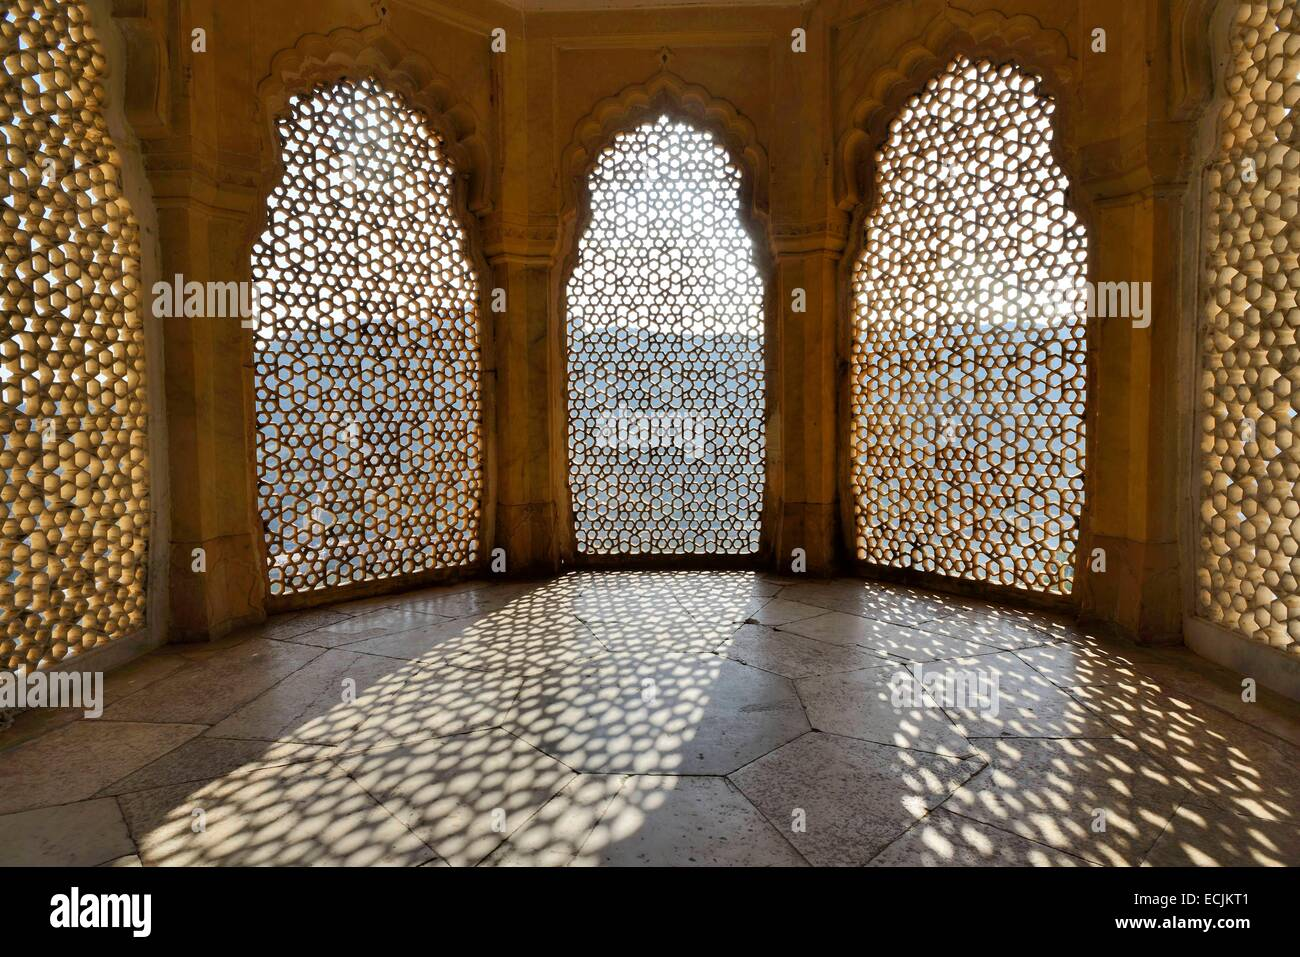 India Rajasthan Amber Fort Jali Latticed Screen